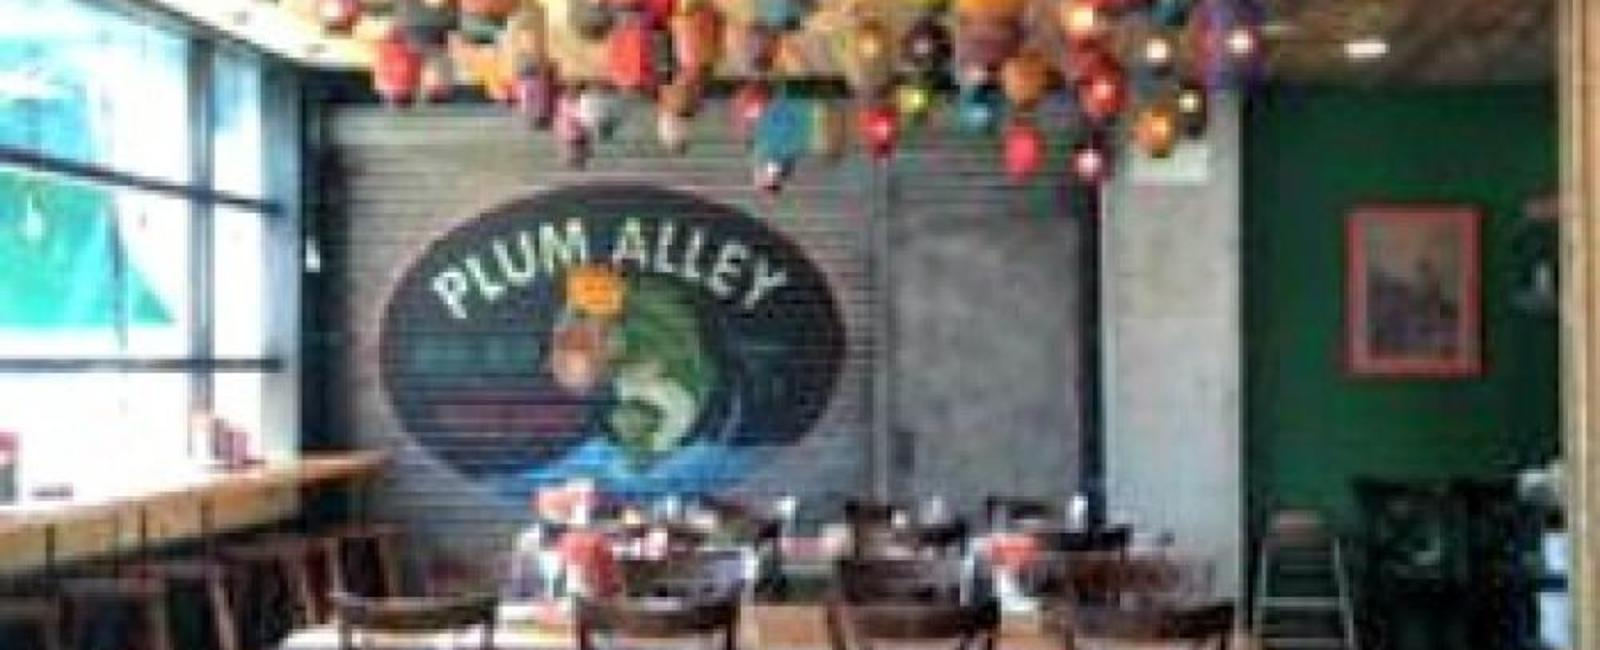 Plum Alley & Ski Utah Serve It Up Family Style